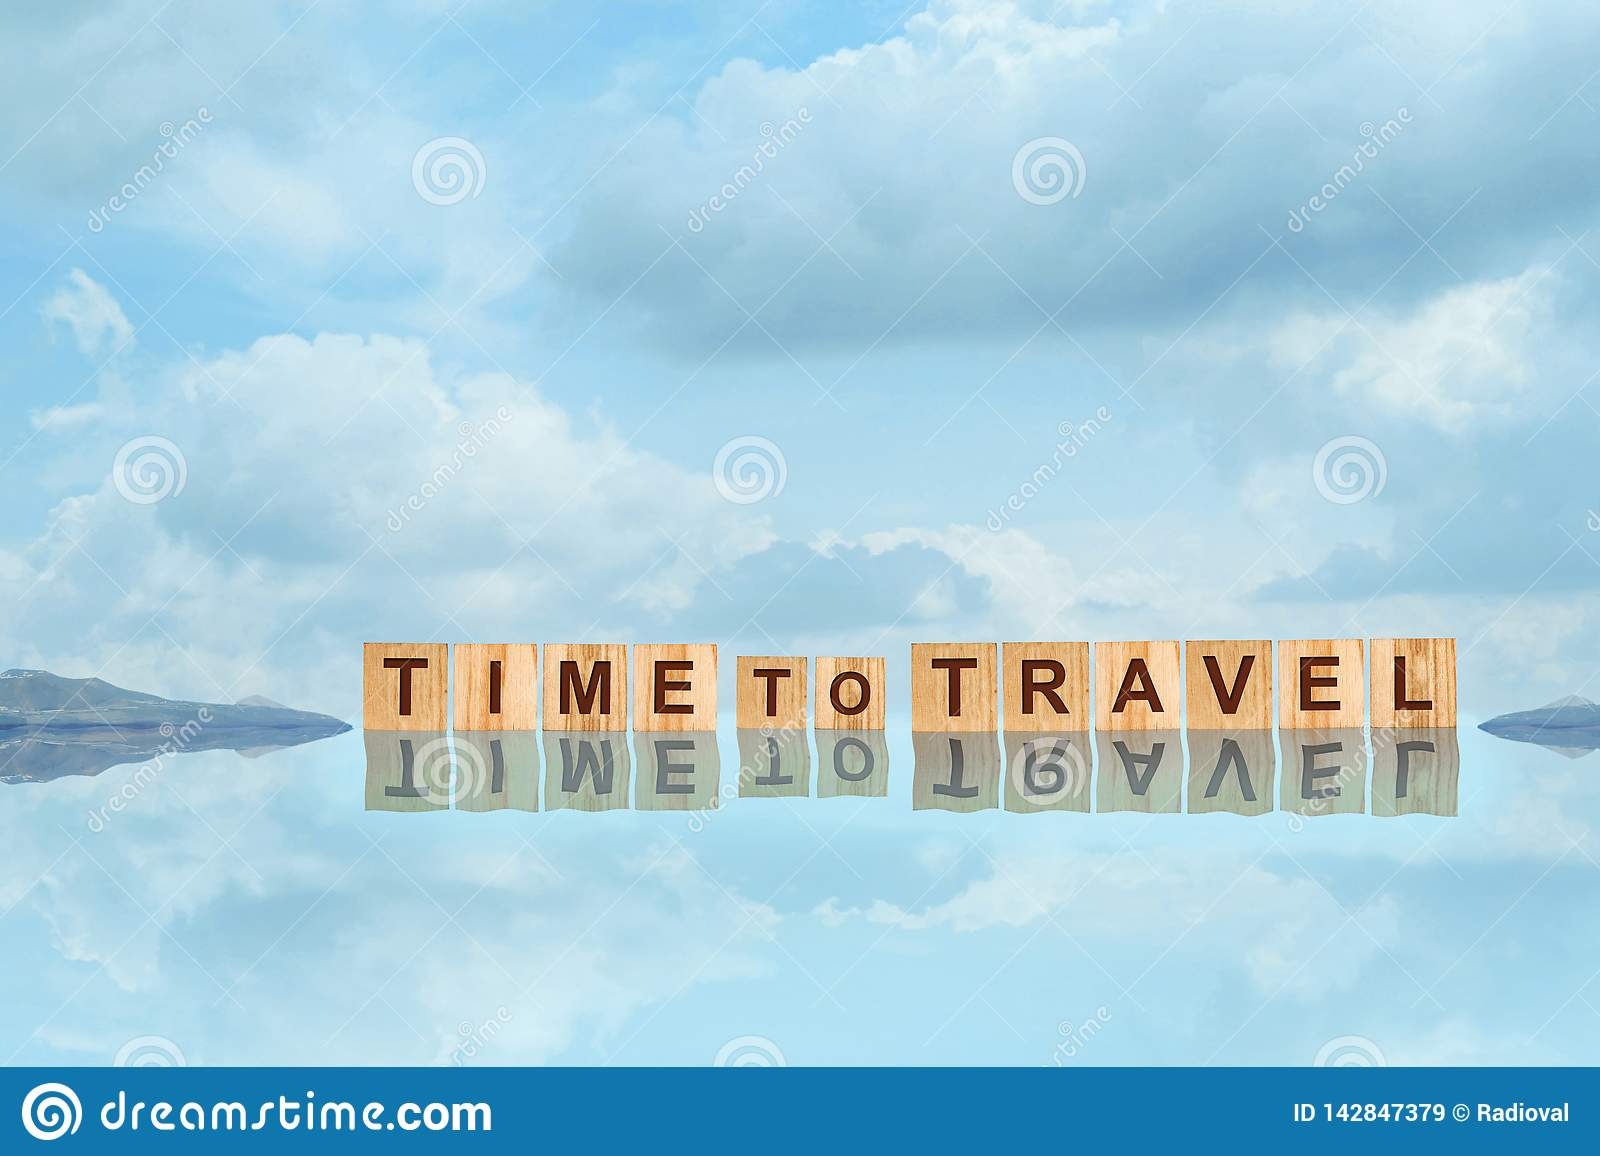 Time To Travel word written on wooden blocks with reflection, against the blue sky with beautiful clouds. Copy space. Travel